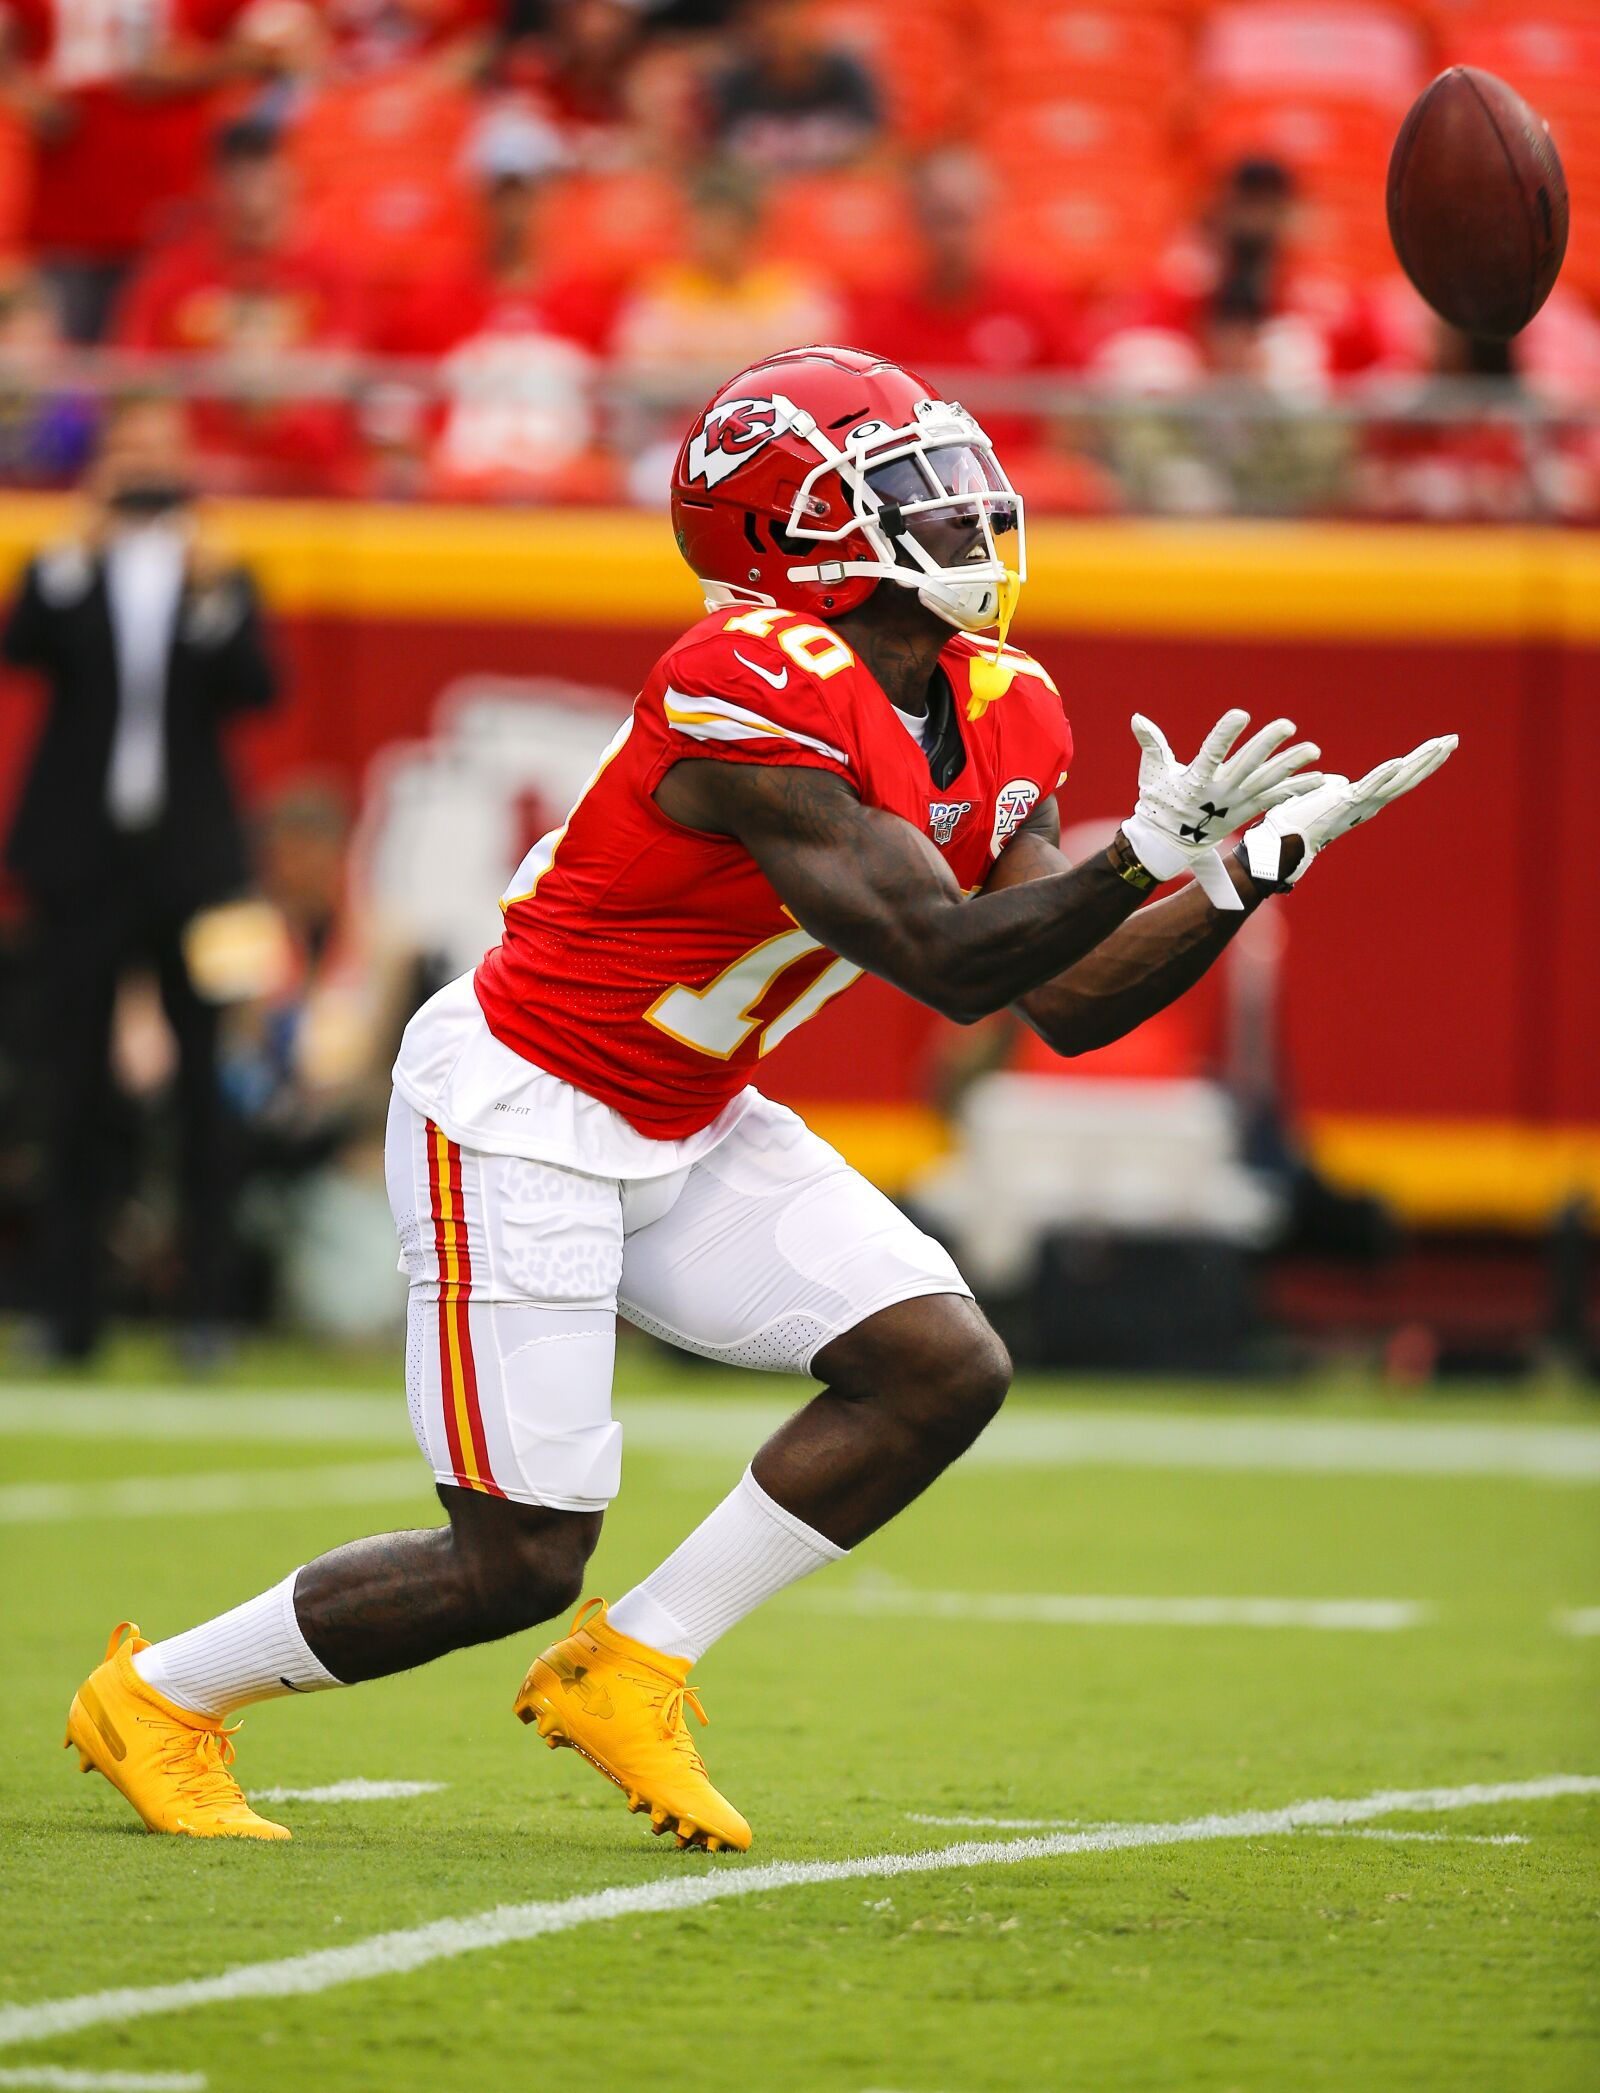 Tyreek Hill could have major fantasy football impact vs. Texans in Week 6